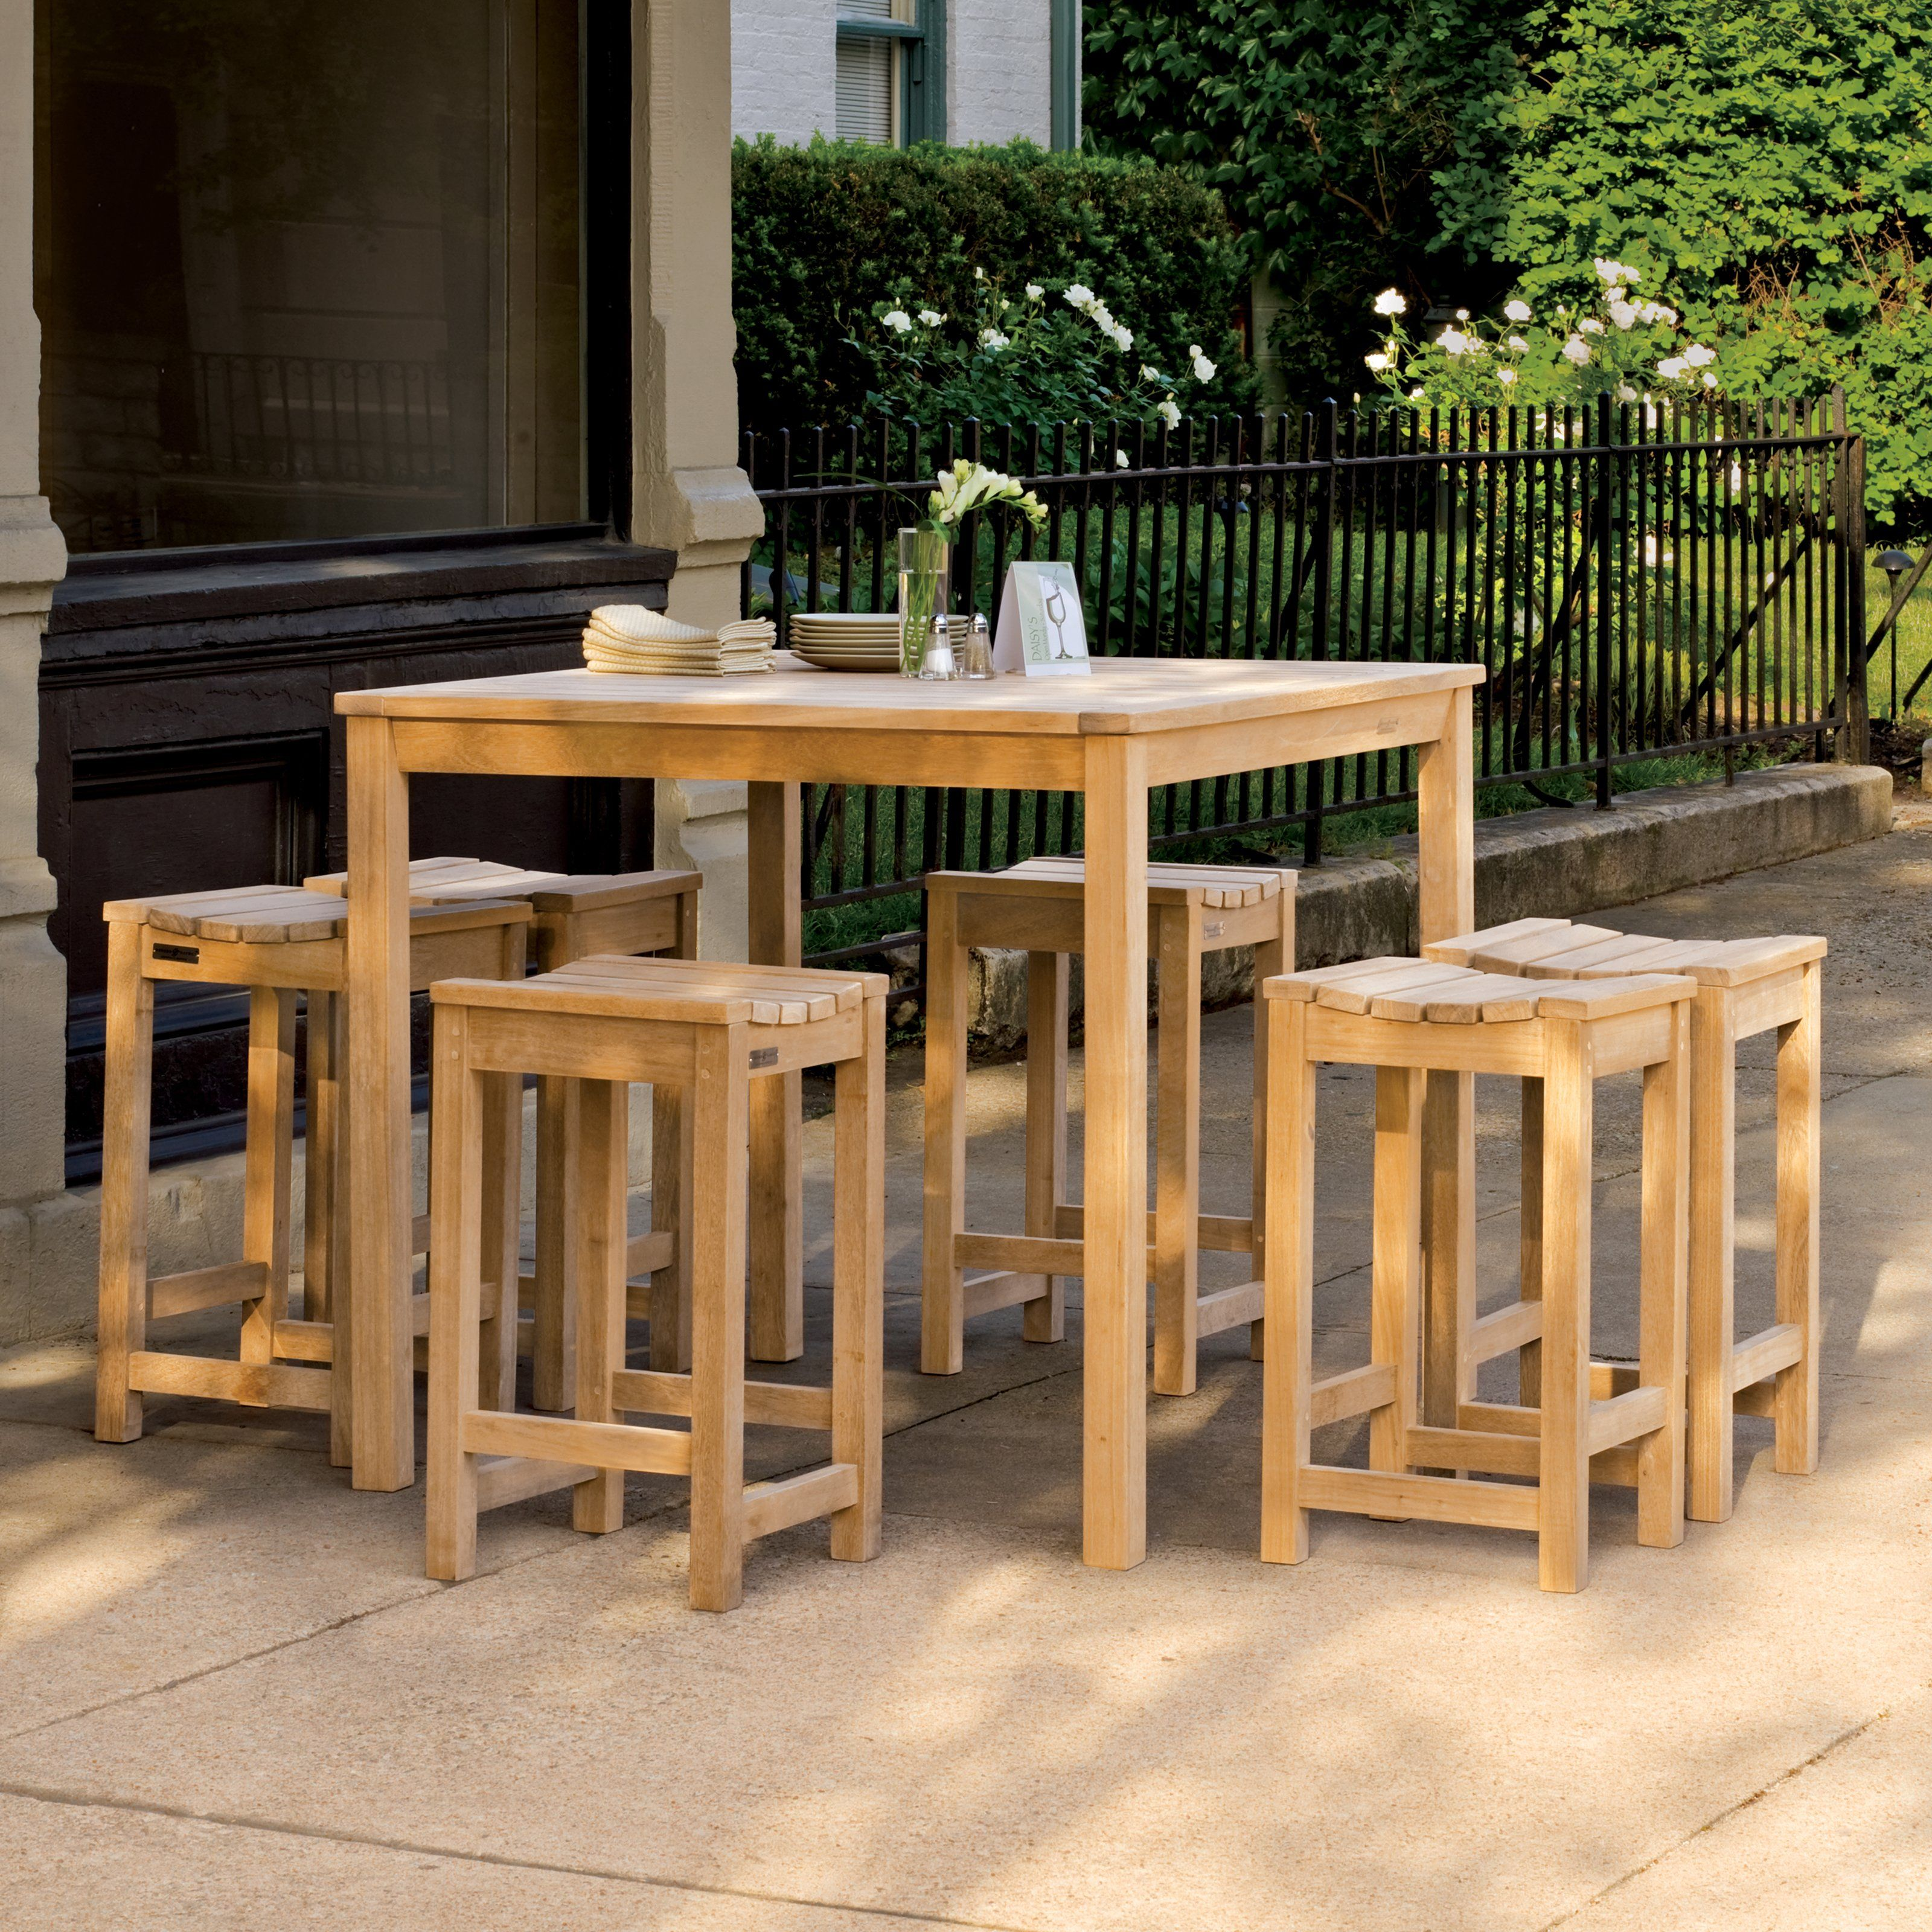 Oxford Garden Hampton Balcony Dining Set   $1372.7 @hayneedle